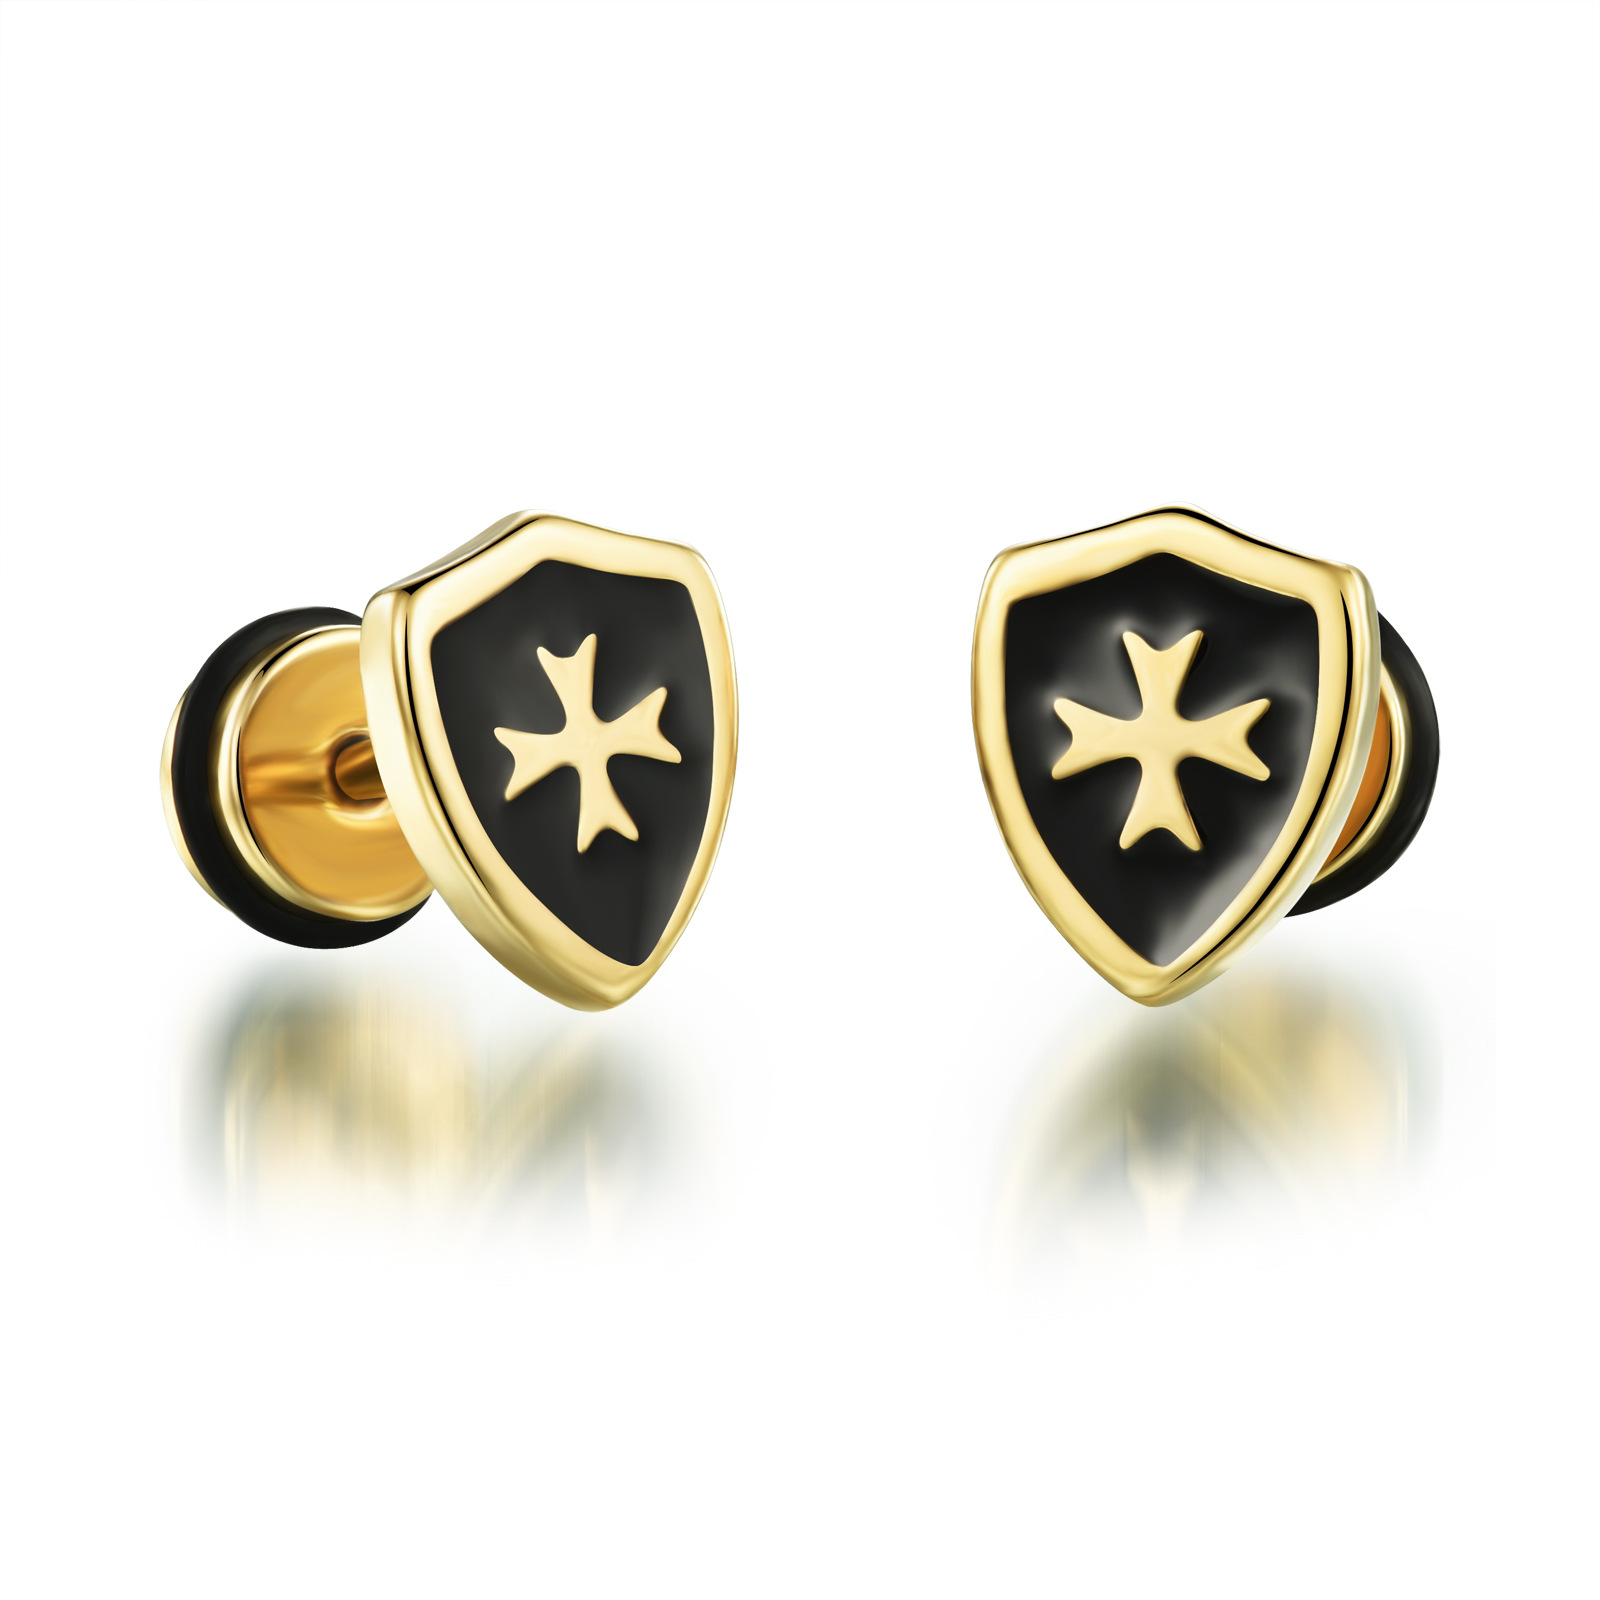 Samll Cool Man Cross Stud Earrings For Men Punk Style Gold Ptelad Stainless Steel Earring Fashion S Jewelry Anti Allergy In From